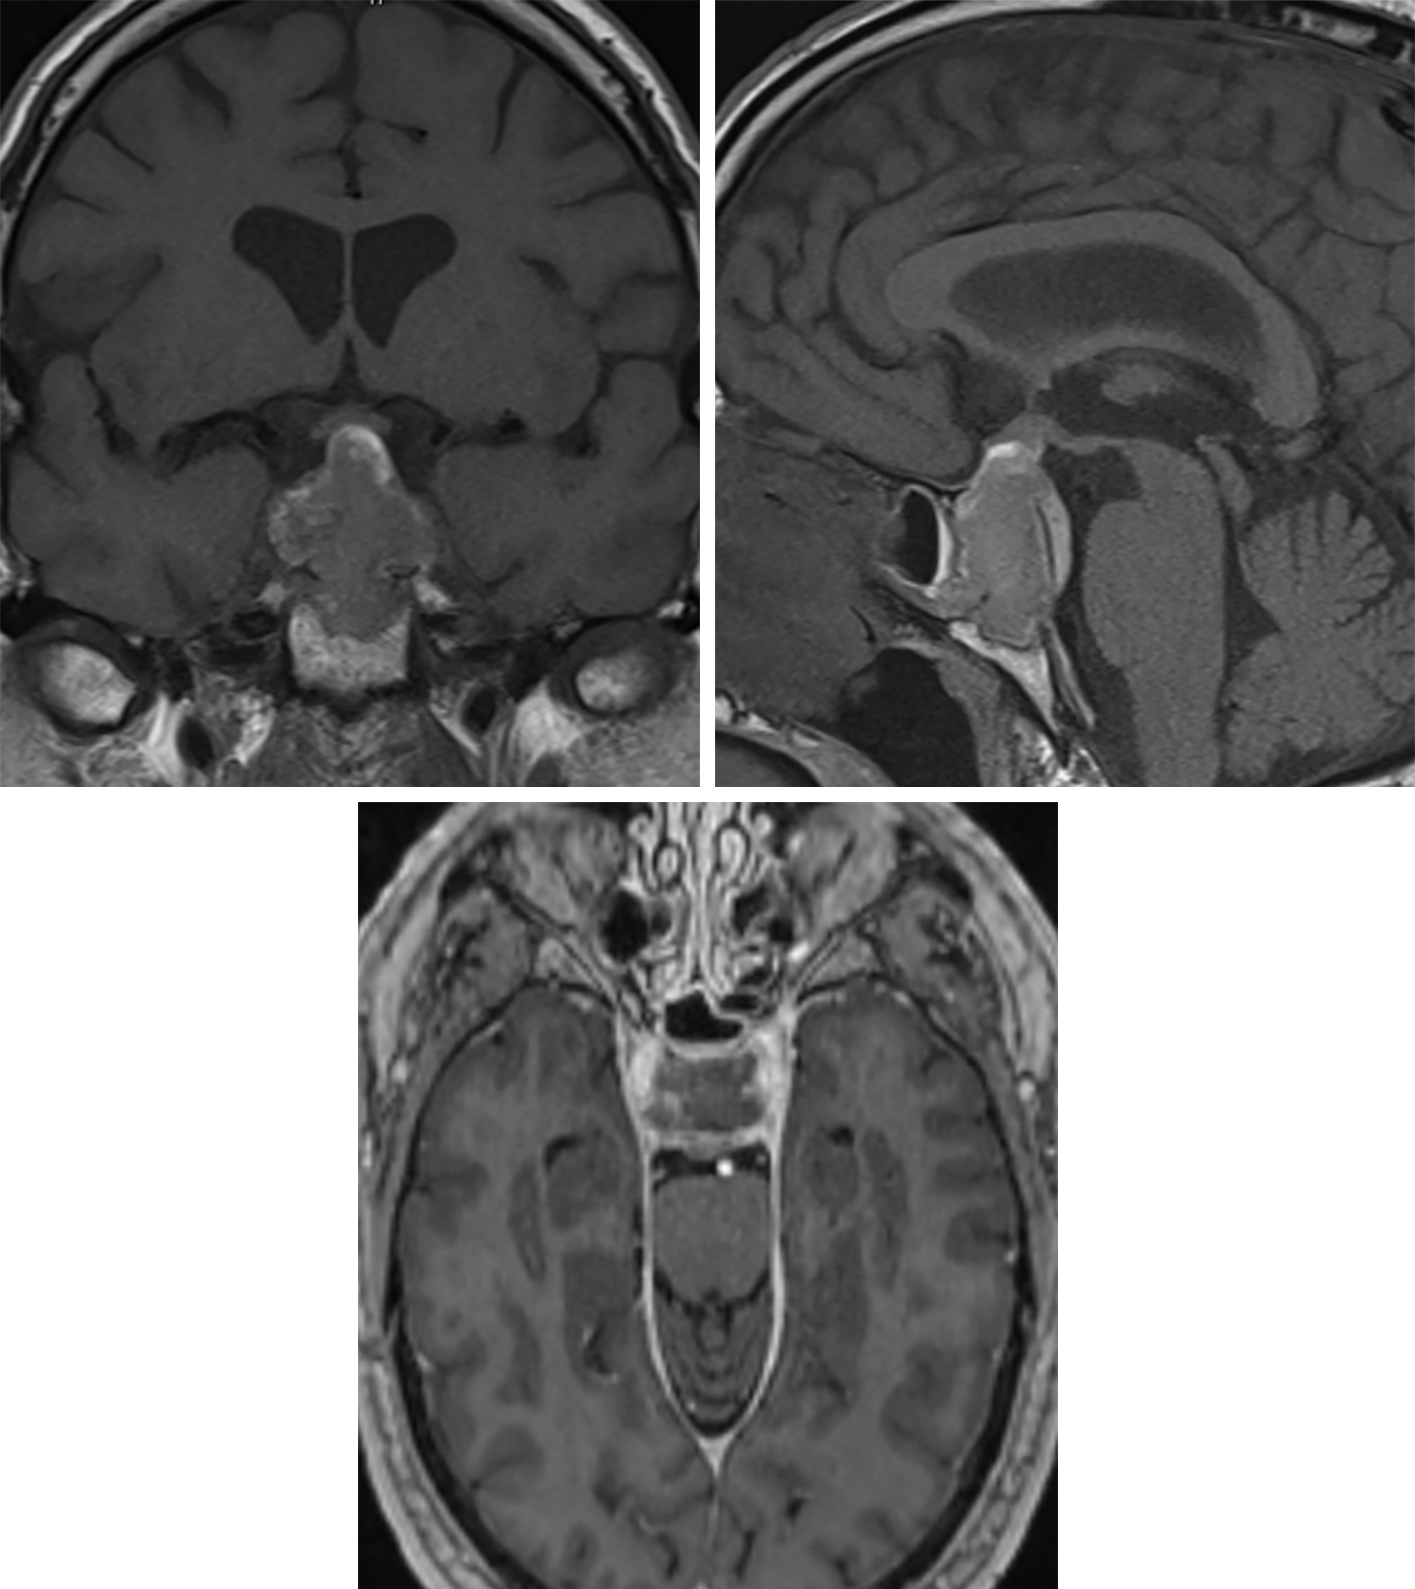 Figure 4: This craniopharyngioma illustrates intrinsic hyperintensity on T1-weighted imaging, even without intravenous contrast (top left, coronal; top right, sagittal), which reflects the cystic proteinaceous content and peripheral calcifications. (Bottom) The axial postcontrast images demonstrate that the center of this lesion is nonenhancing cyst or necrosis, with only a thin rim of peripheral enhancement after contrast administration. This tumor grows superiorly from the region of the sella and contacts and lifts the optic chiasm (top left and top row right), which puts the patient at risk for visual impairment.